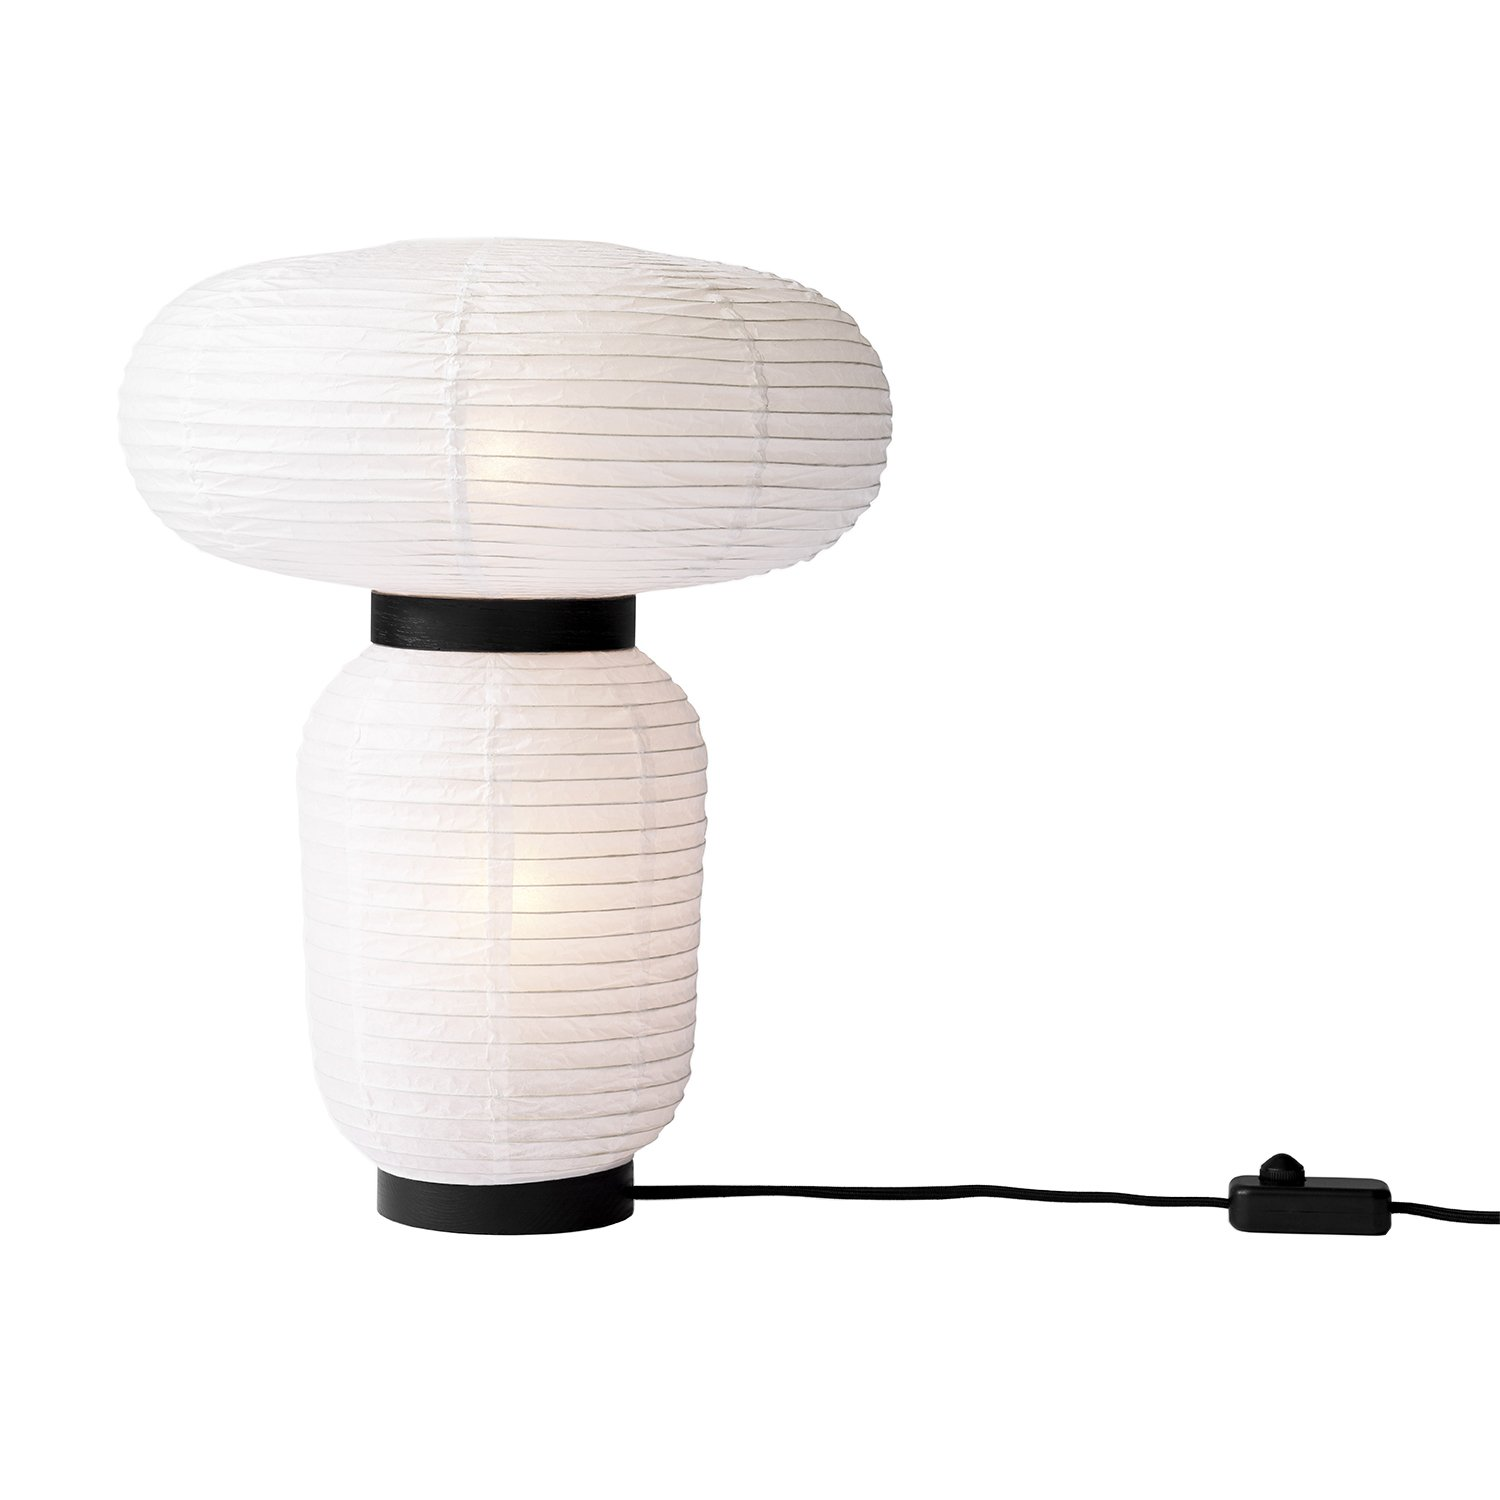 Formakami Jh18 Table Lamp Buy Tradition Online At A R Lamp Table Lamp Task Lamps